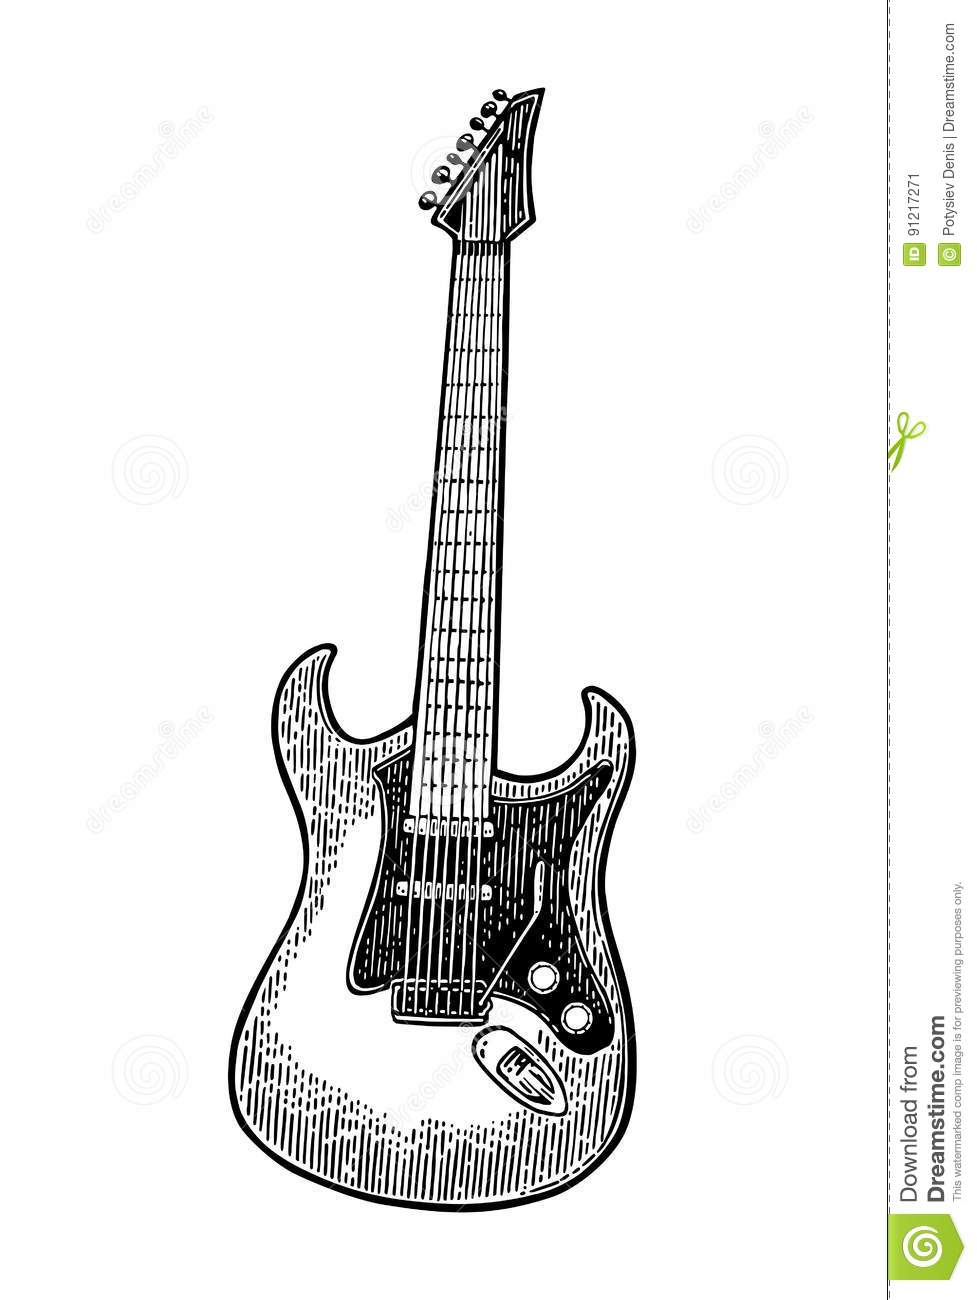 Acoustic Guitar Vintage Vector Black Engraving Illustration Stock